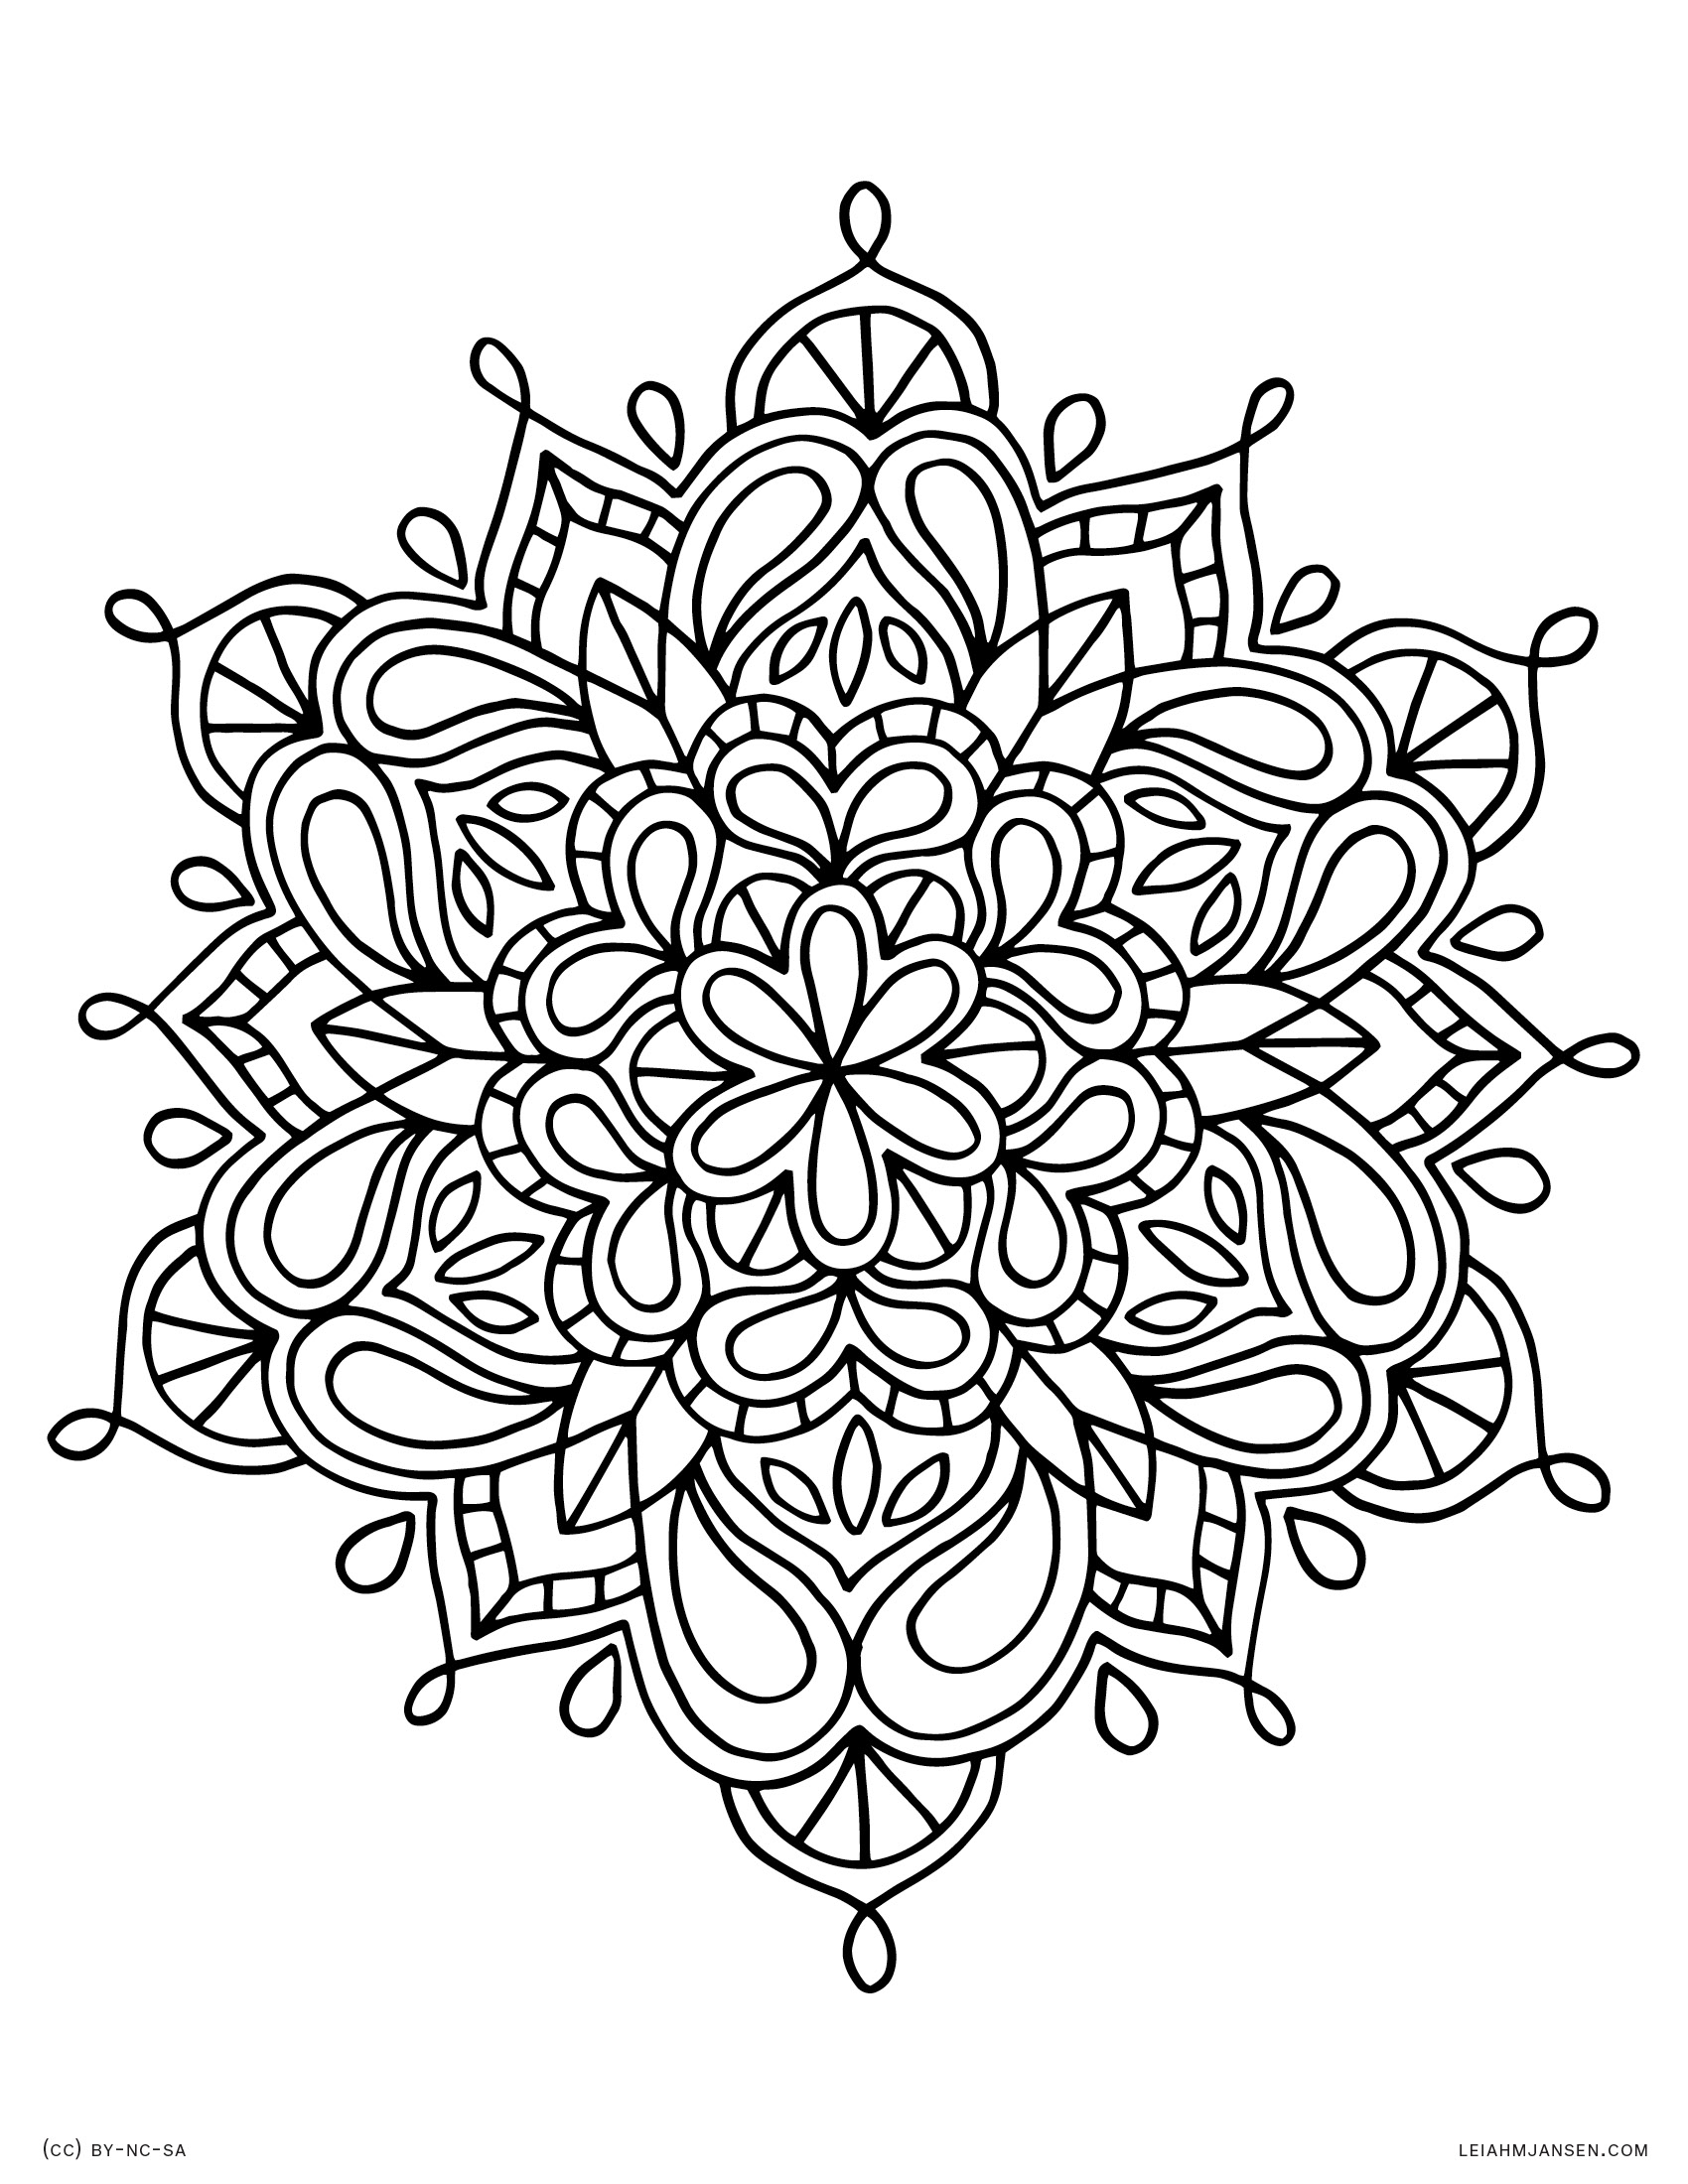 symmetry colouring sheets symmetrical coloring pages at getcoloringscom free sheets colouring symmetry